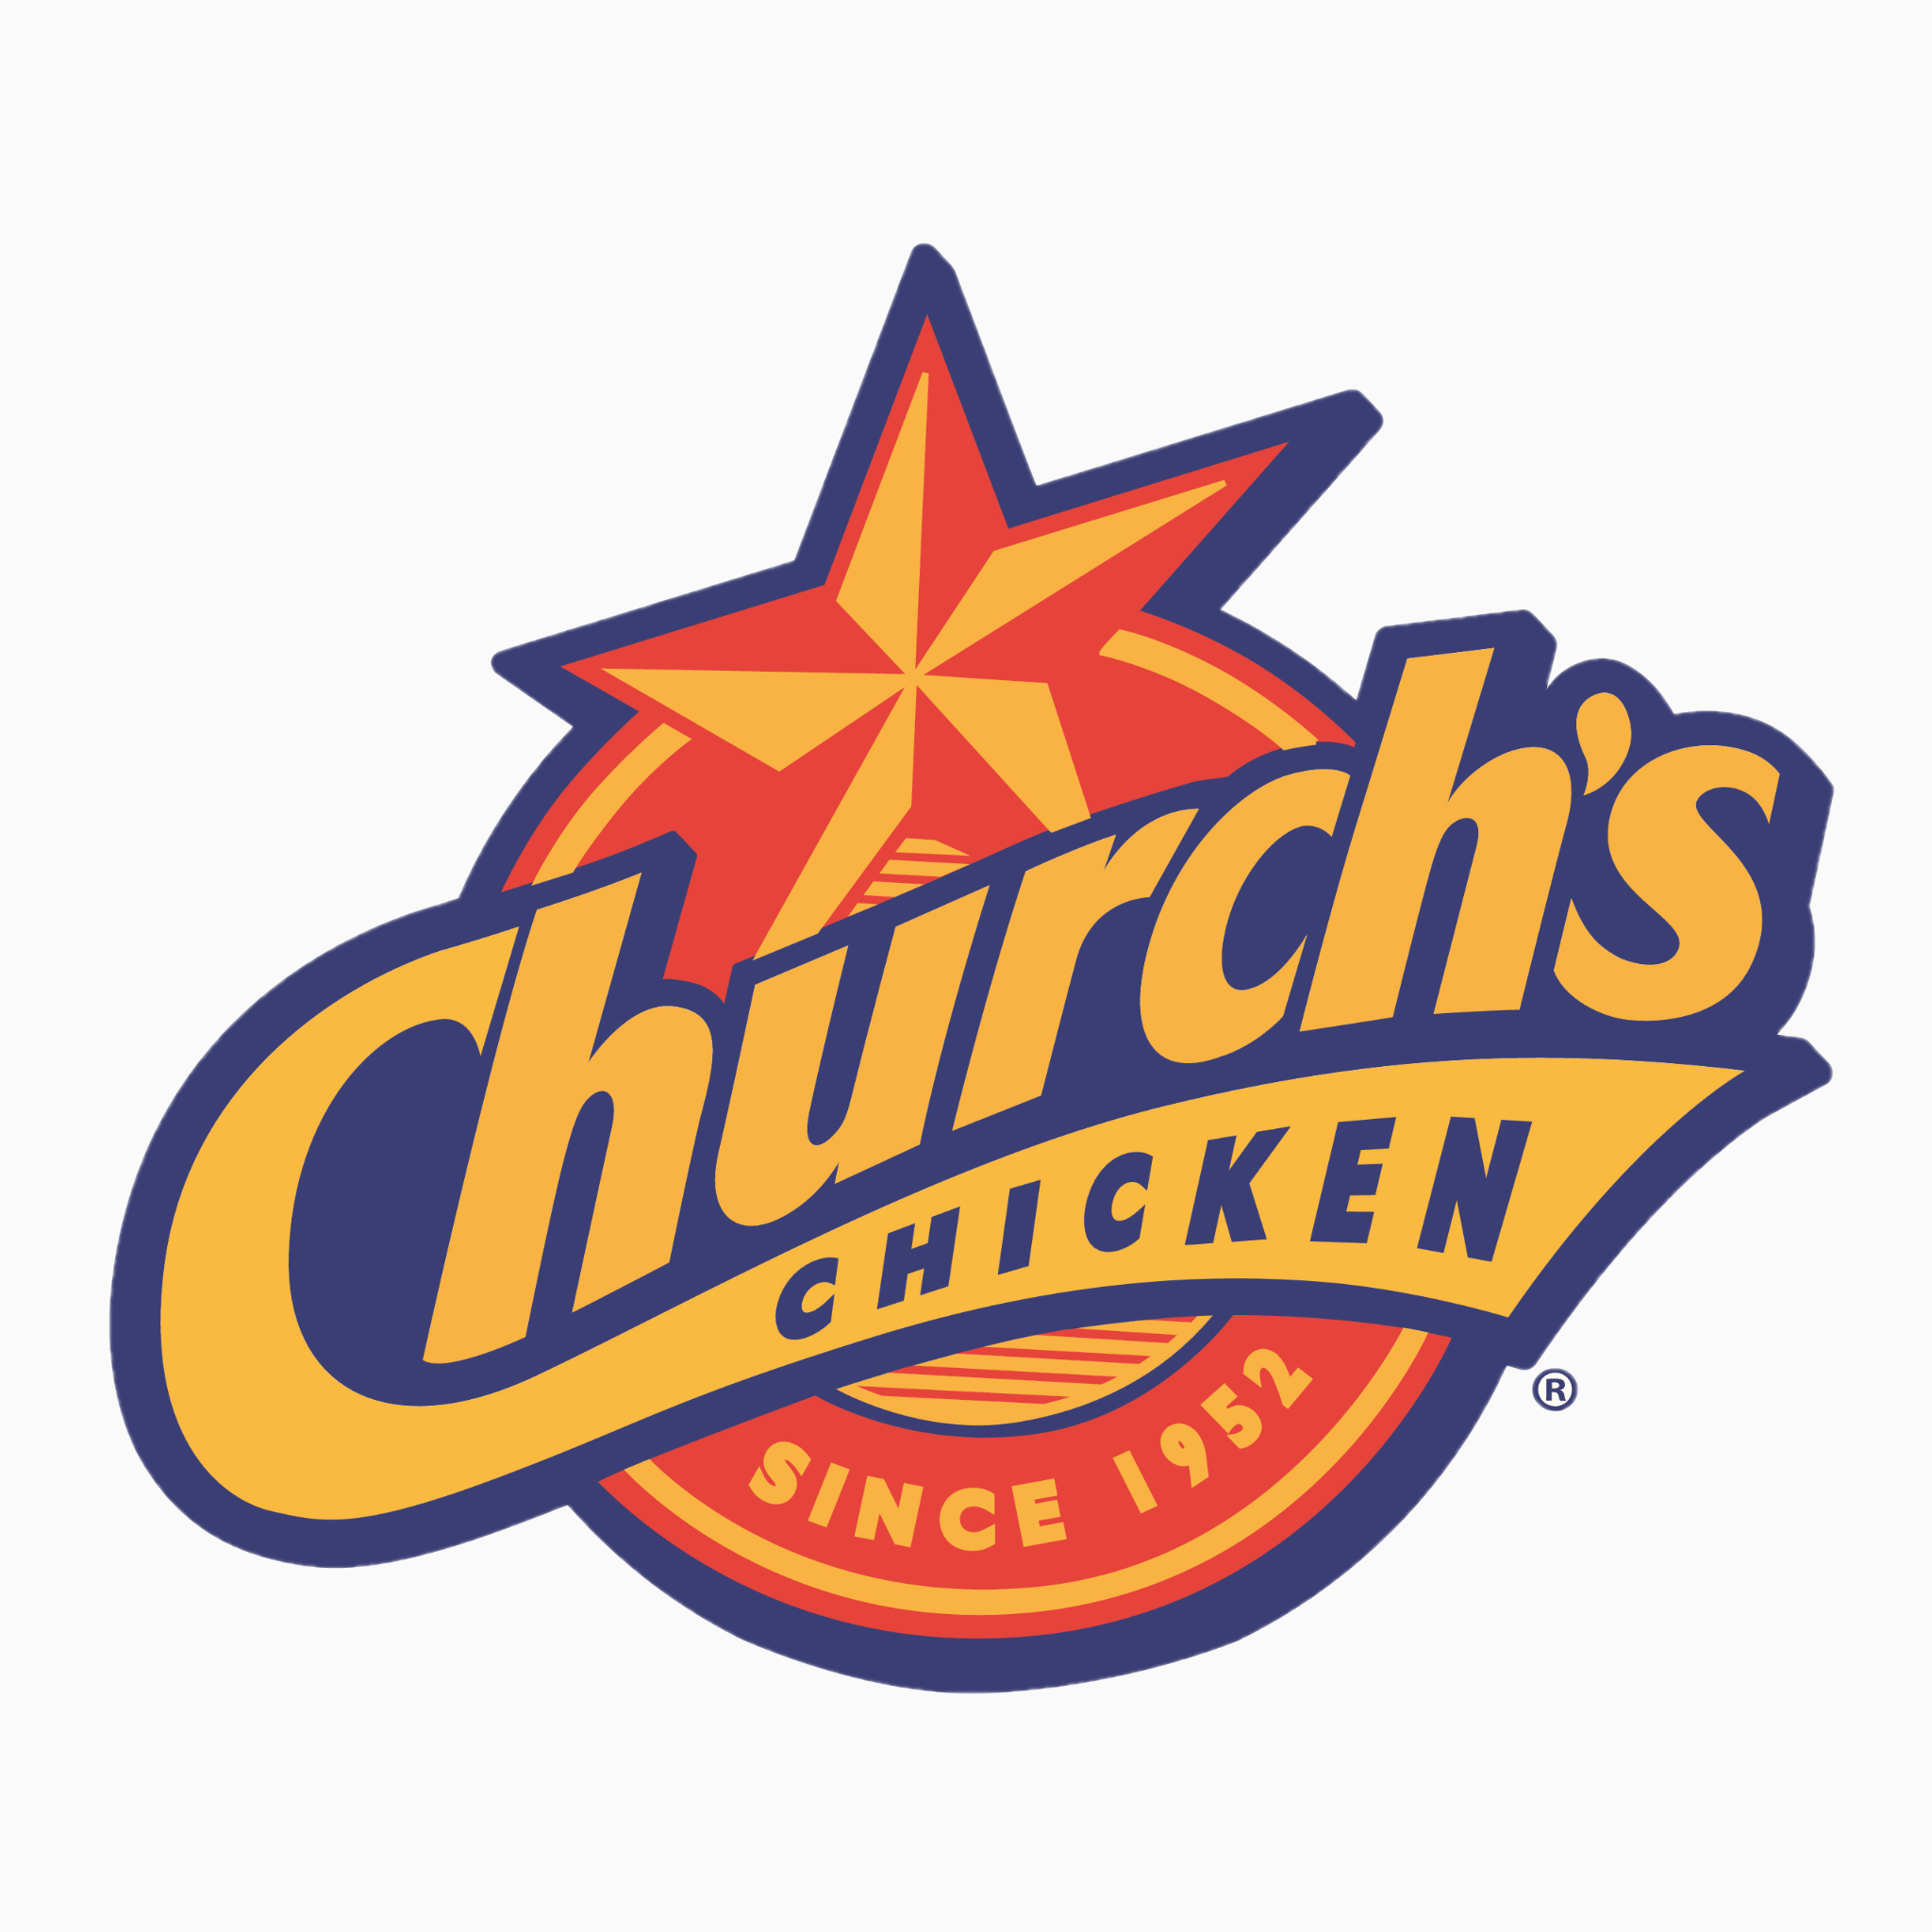 Churchs logo new background.png